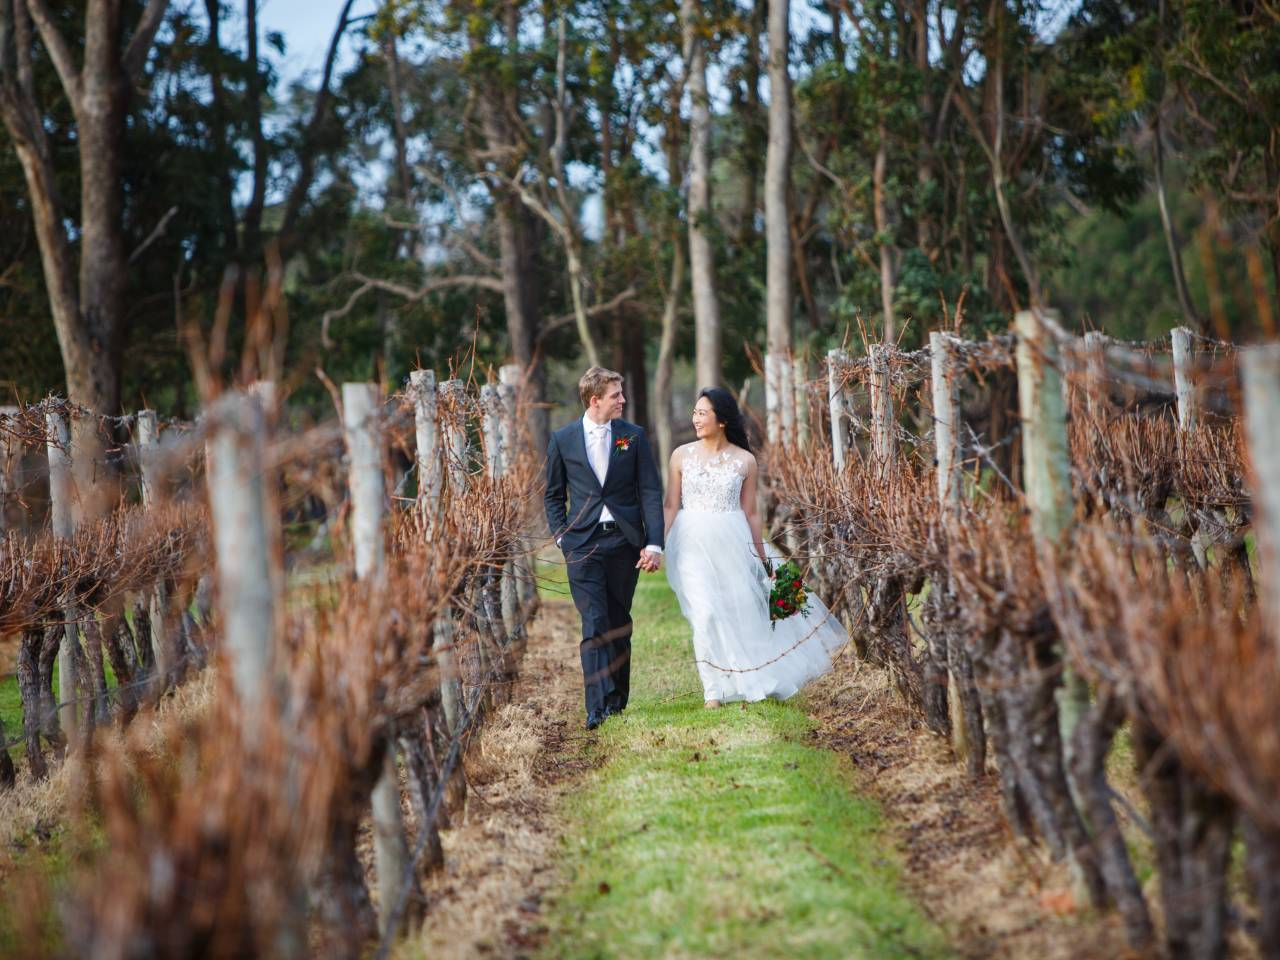 Bride and Groom Walking Through Vines On Their Wedding Day